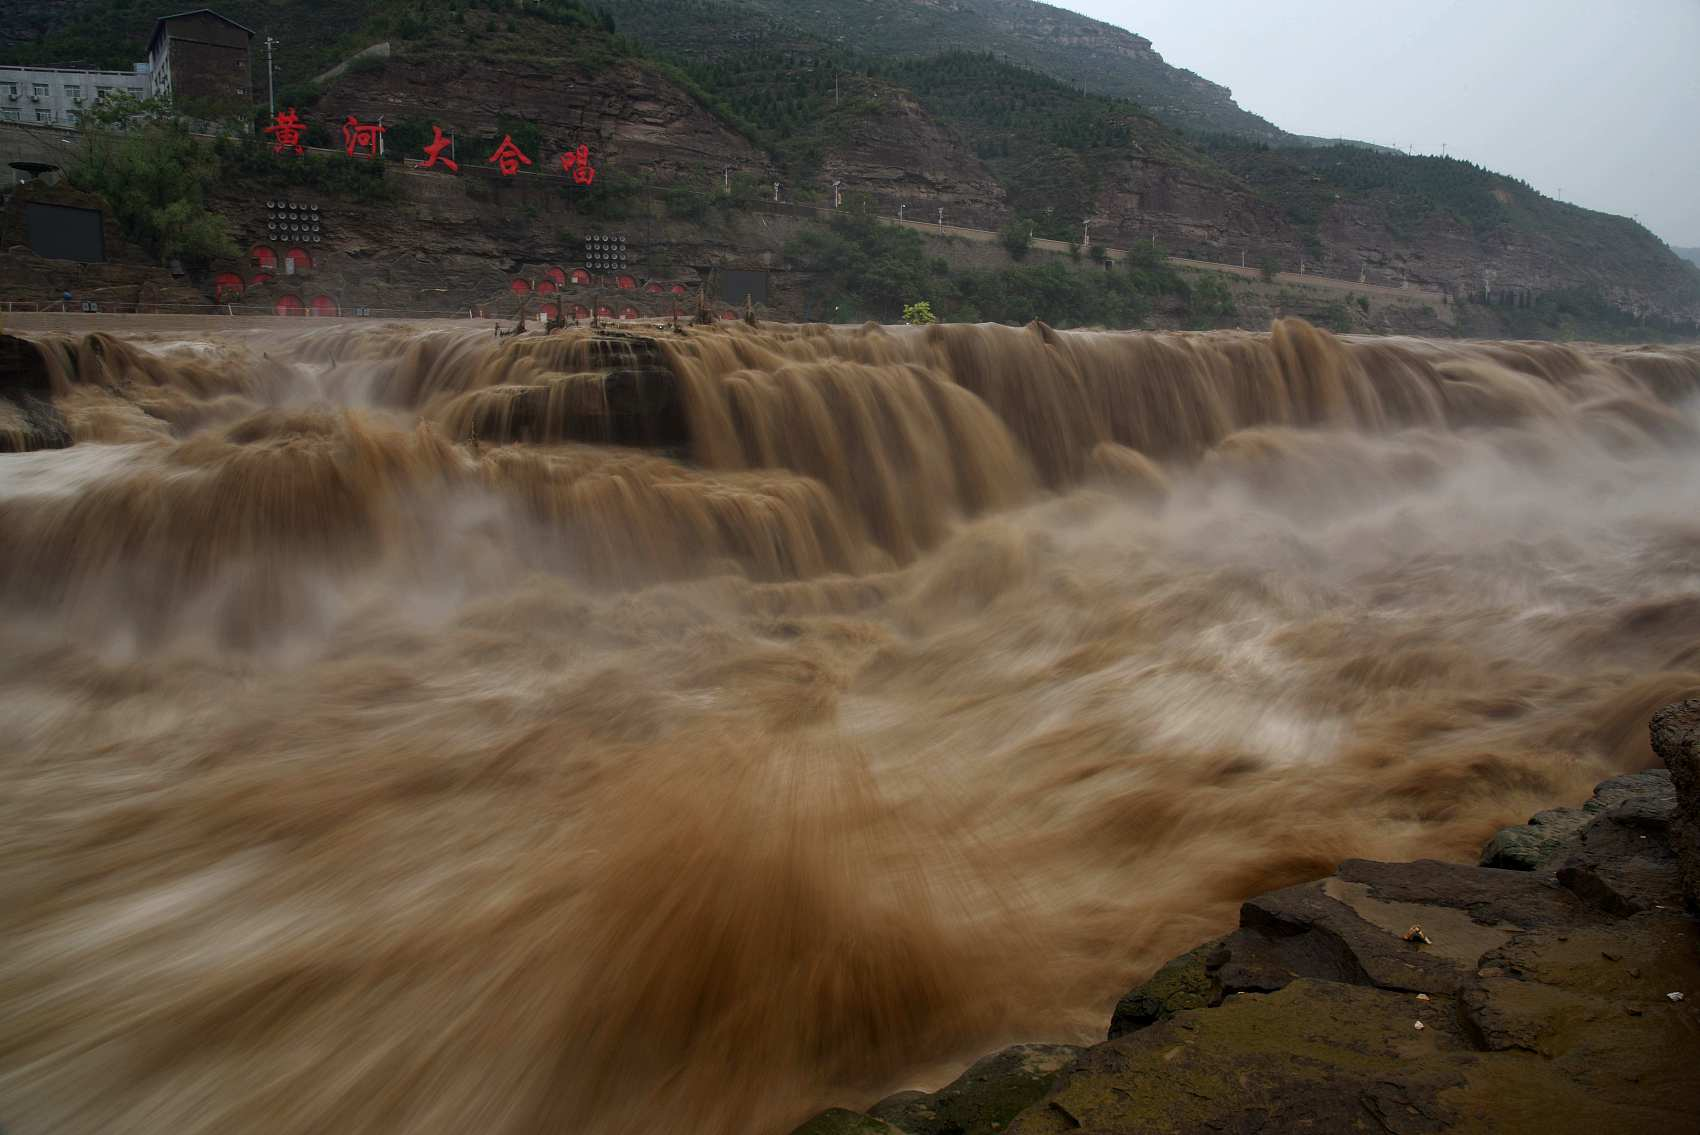 Water volume of Yellow River's Hukou Waterfall increases, attracting many tourists